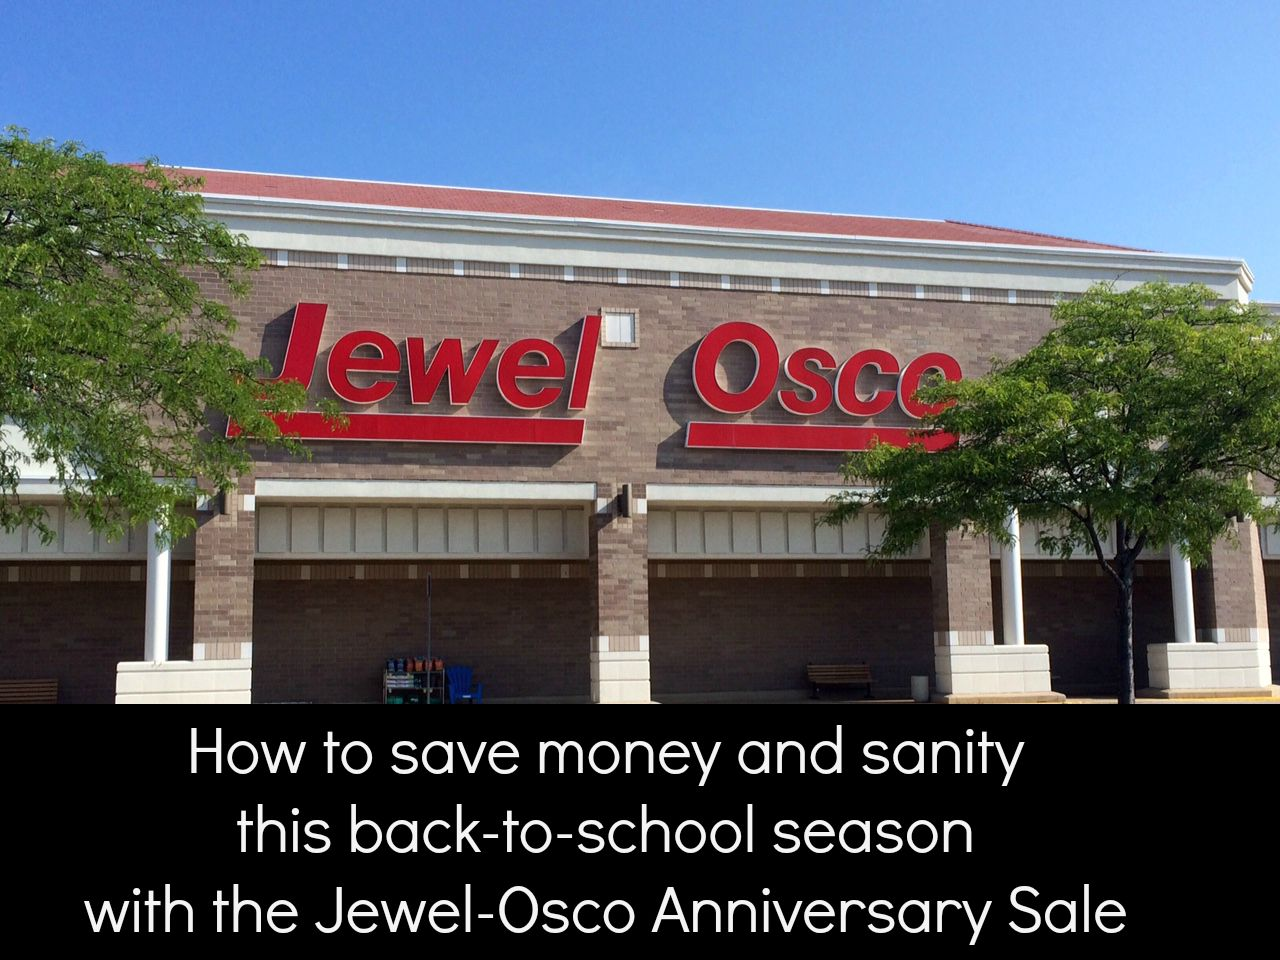 How stocking up at the Jewel-Osco Anniversary sale can save money ...